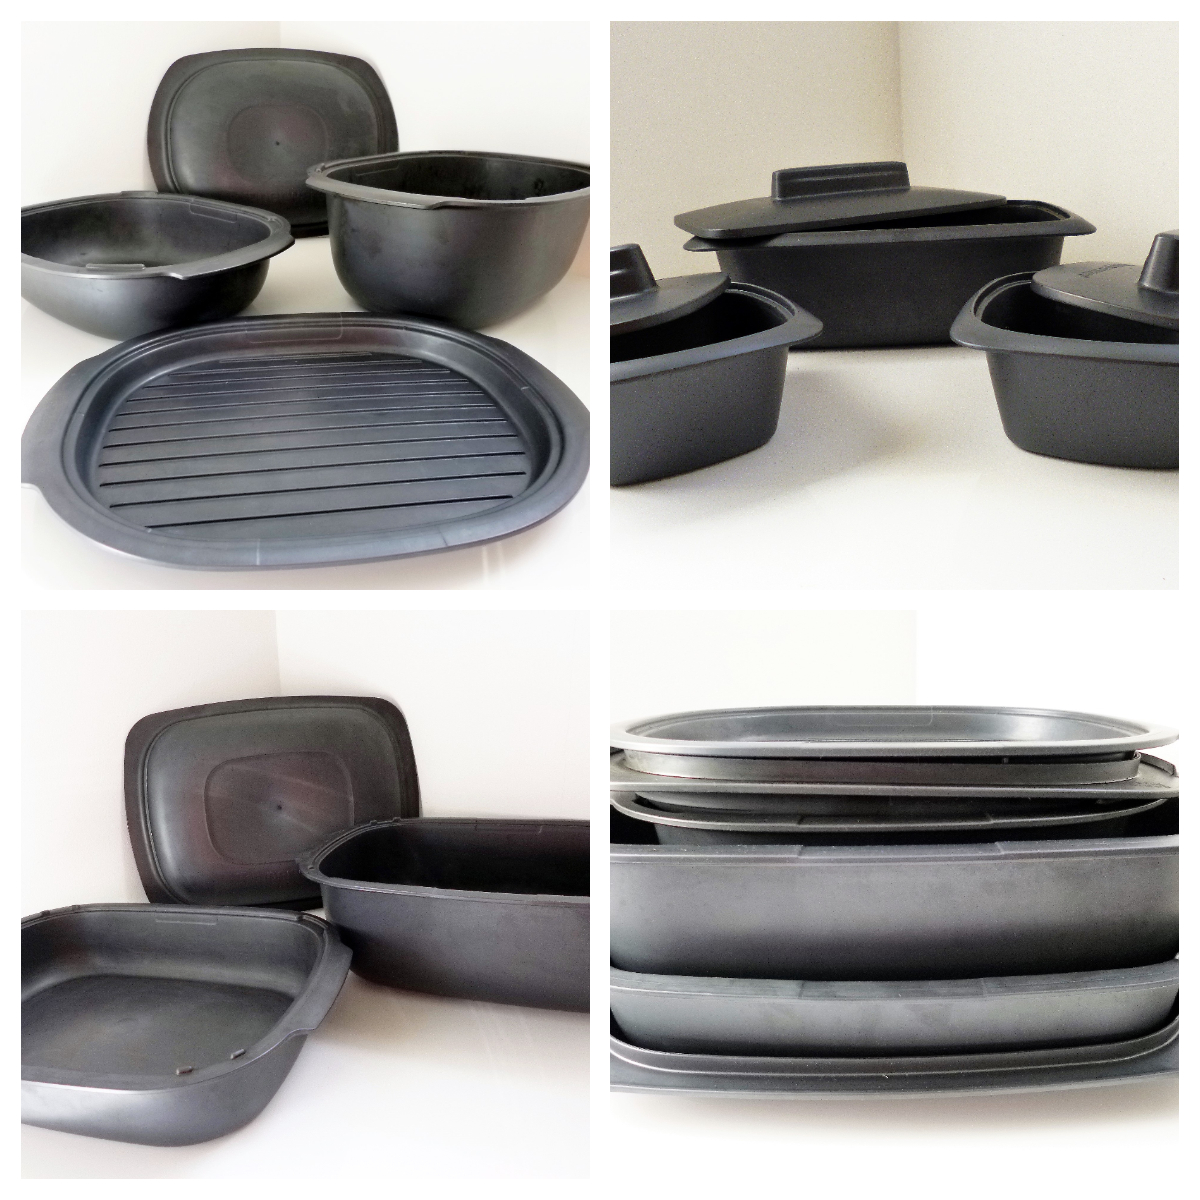 cocotte ultra pro tupperware la recette facile par toqu s 2 cuisine. Black Bedroom Furniture Sets. Home Design Ideas